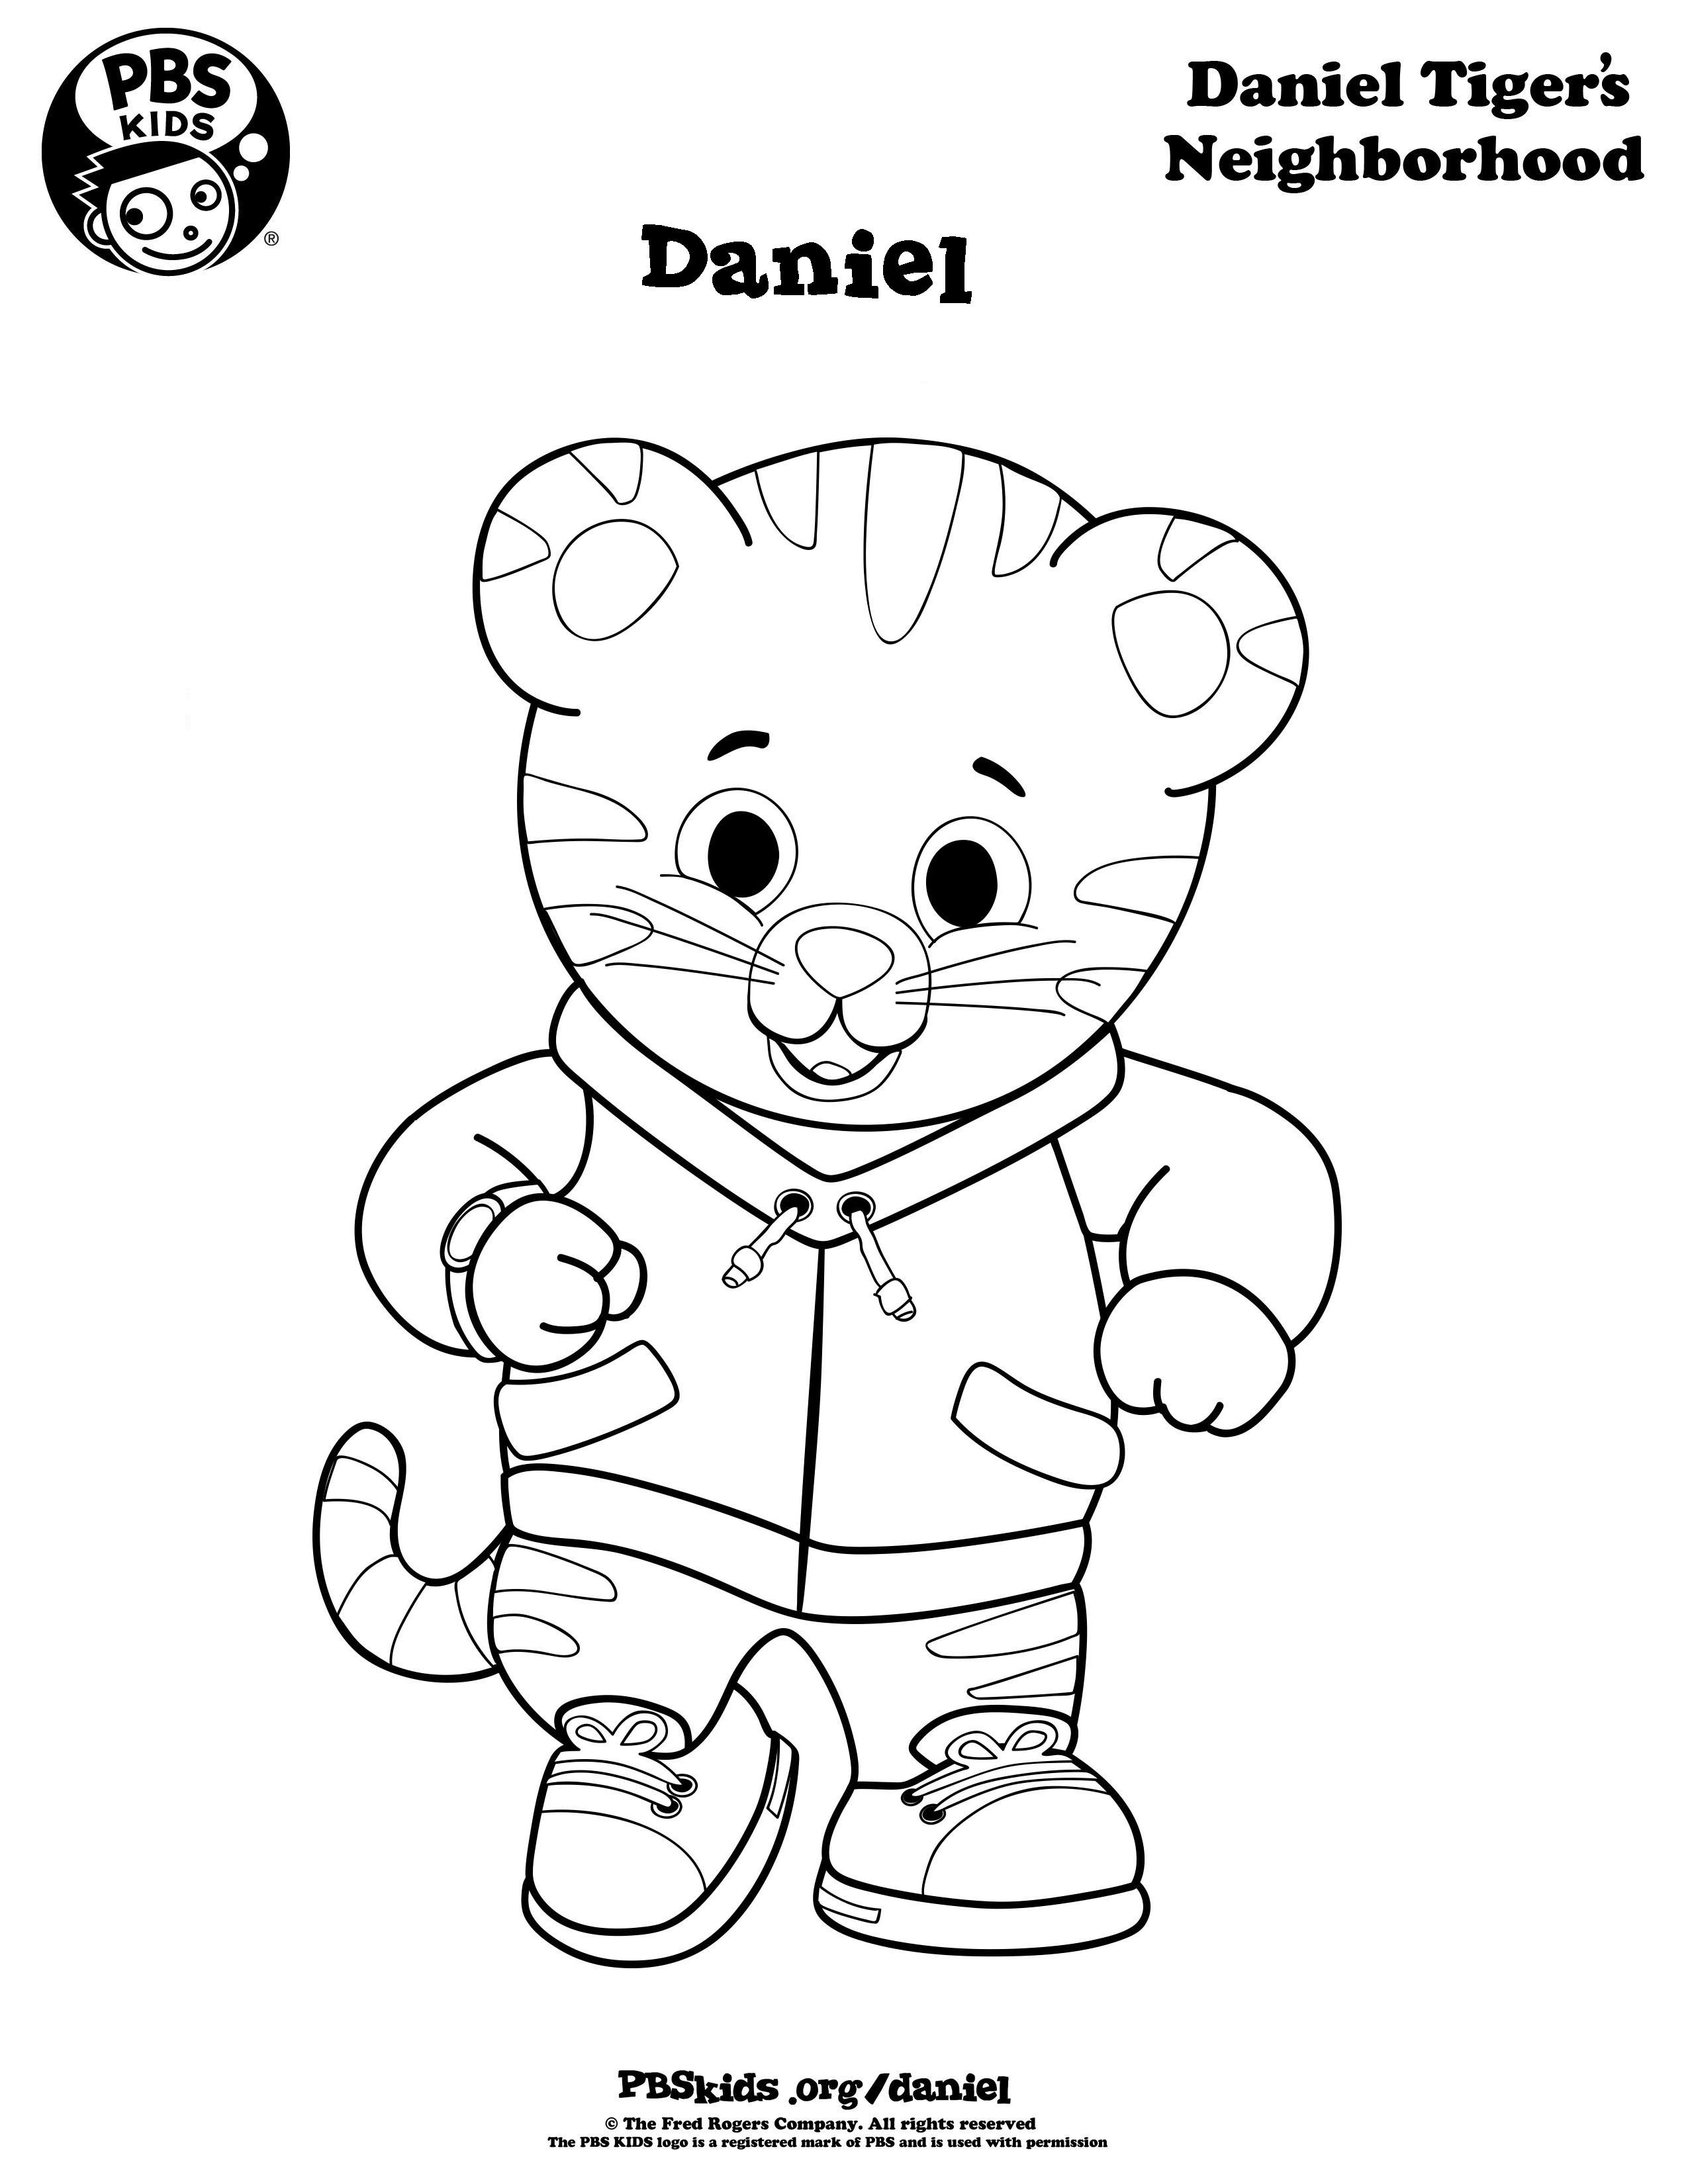 Pin By Kristen Miller On Noah S 1st Birthday Daniel Tiger